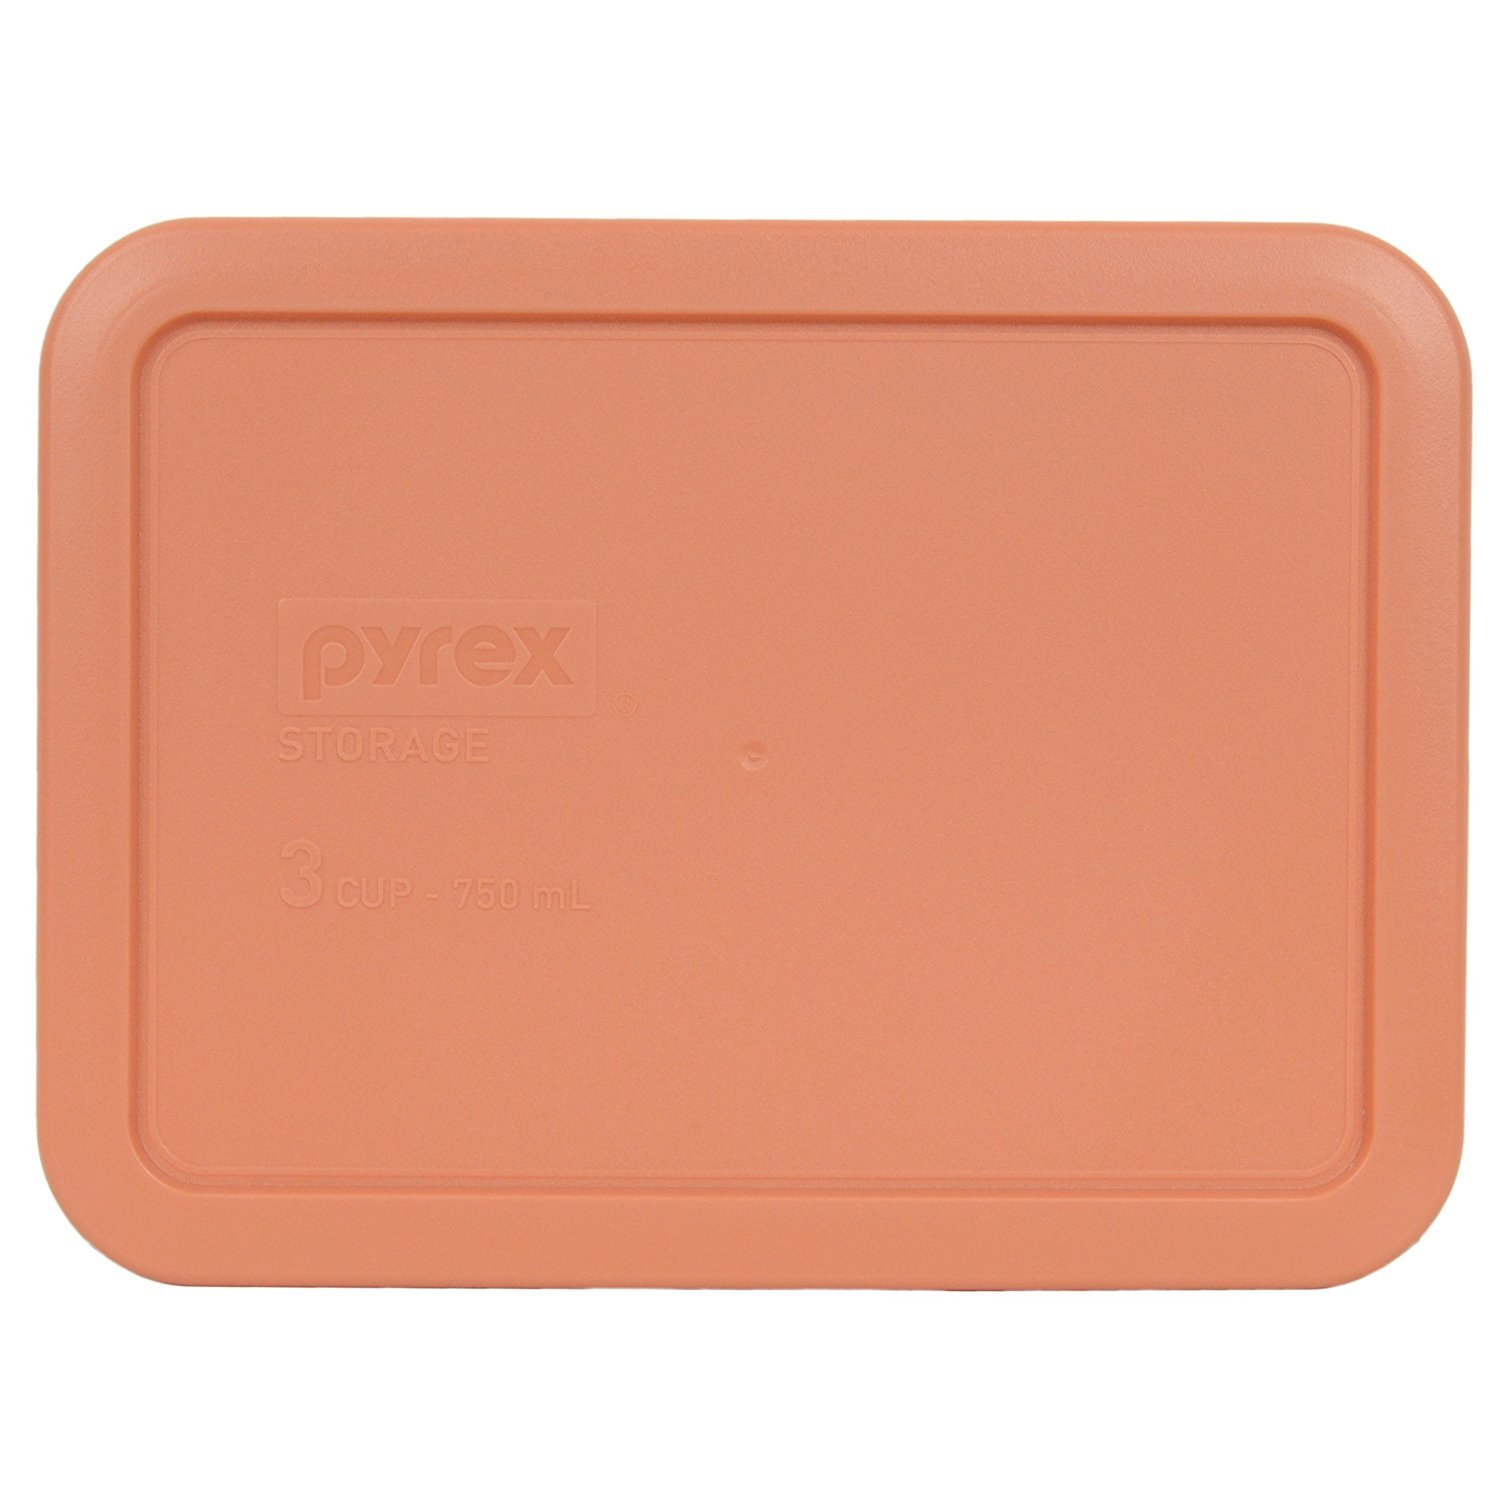 Pyrex 7210-PC 3 Cup Rectangle Storage Lid Cover for 3 Cup Dish (1, Light Orange) by Pyrex